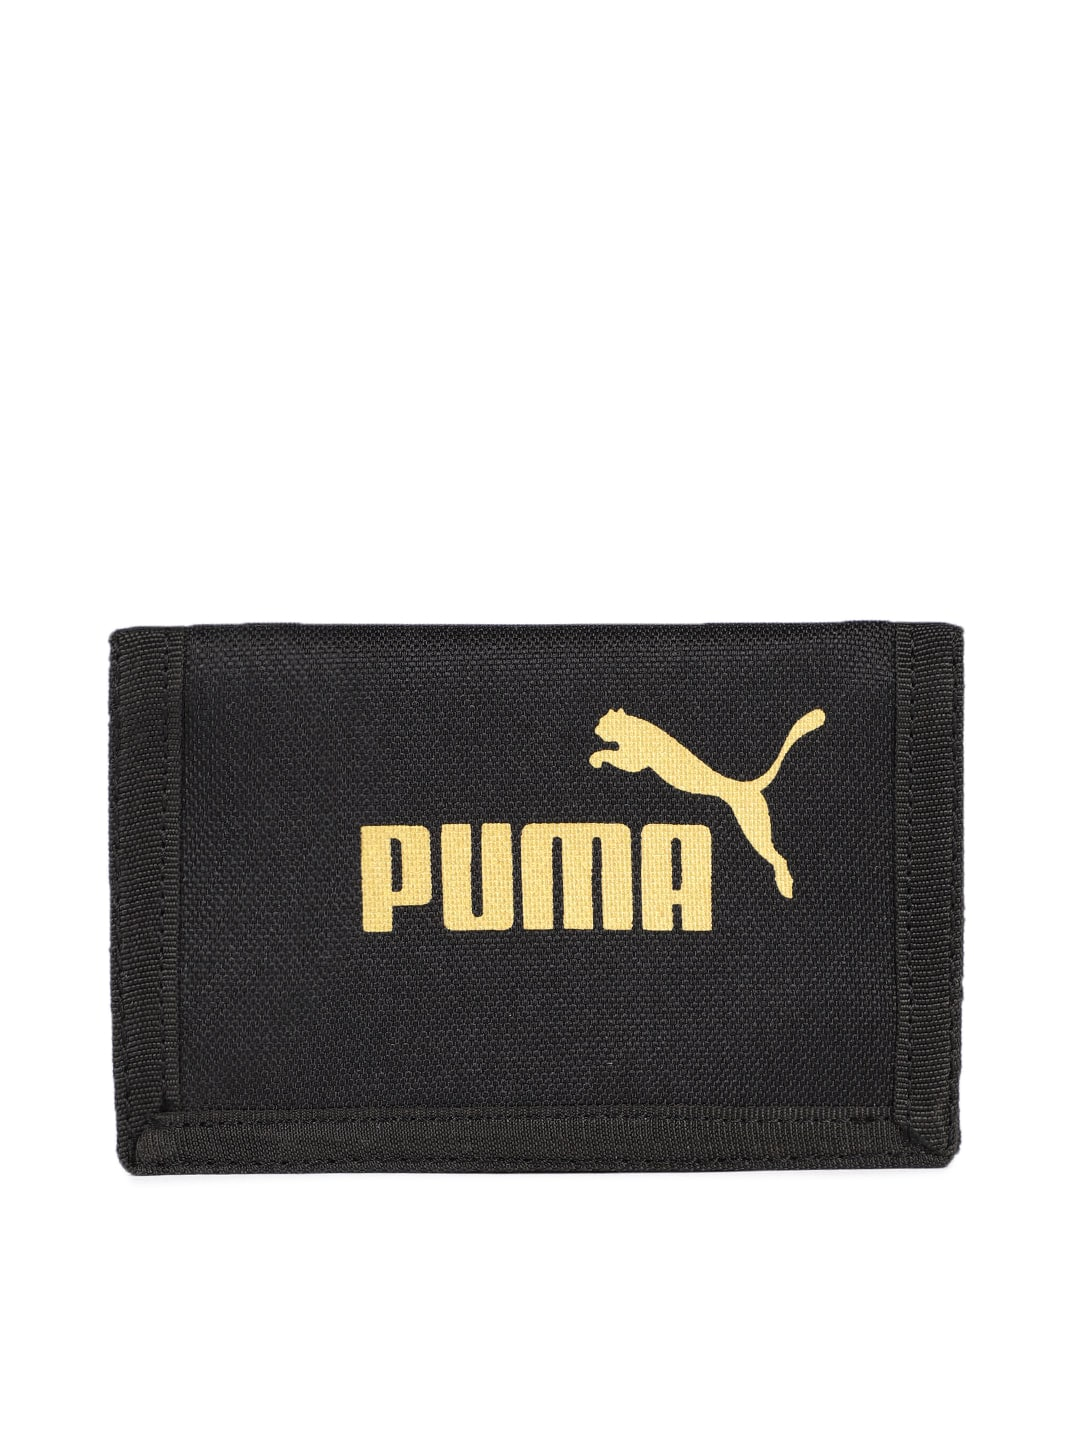 5fbc1f1891e7b Puma Ferrari Wallets - Buy Puma Ferrari Wallets online in India